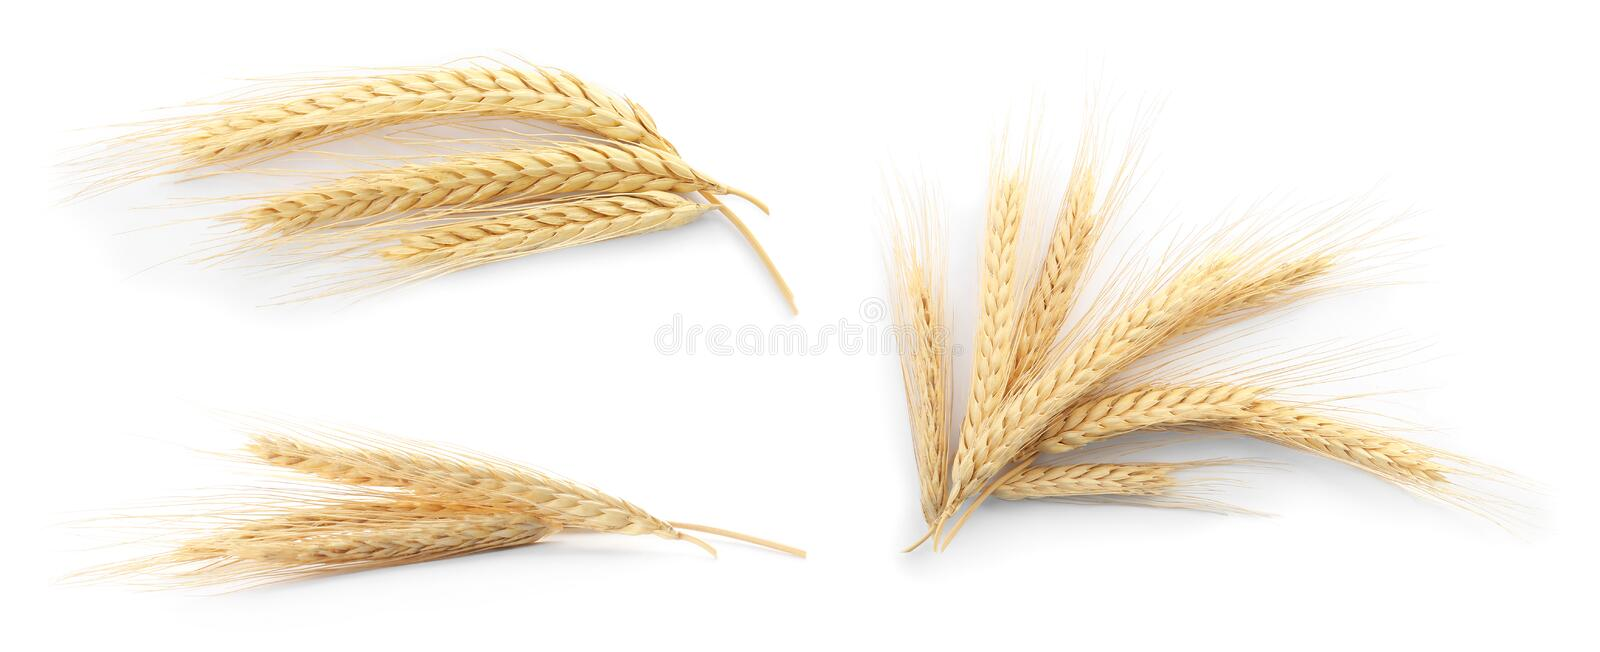 Set with spikelets on white background royalty free stock photography